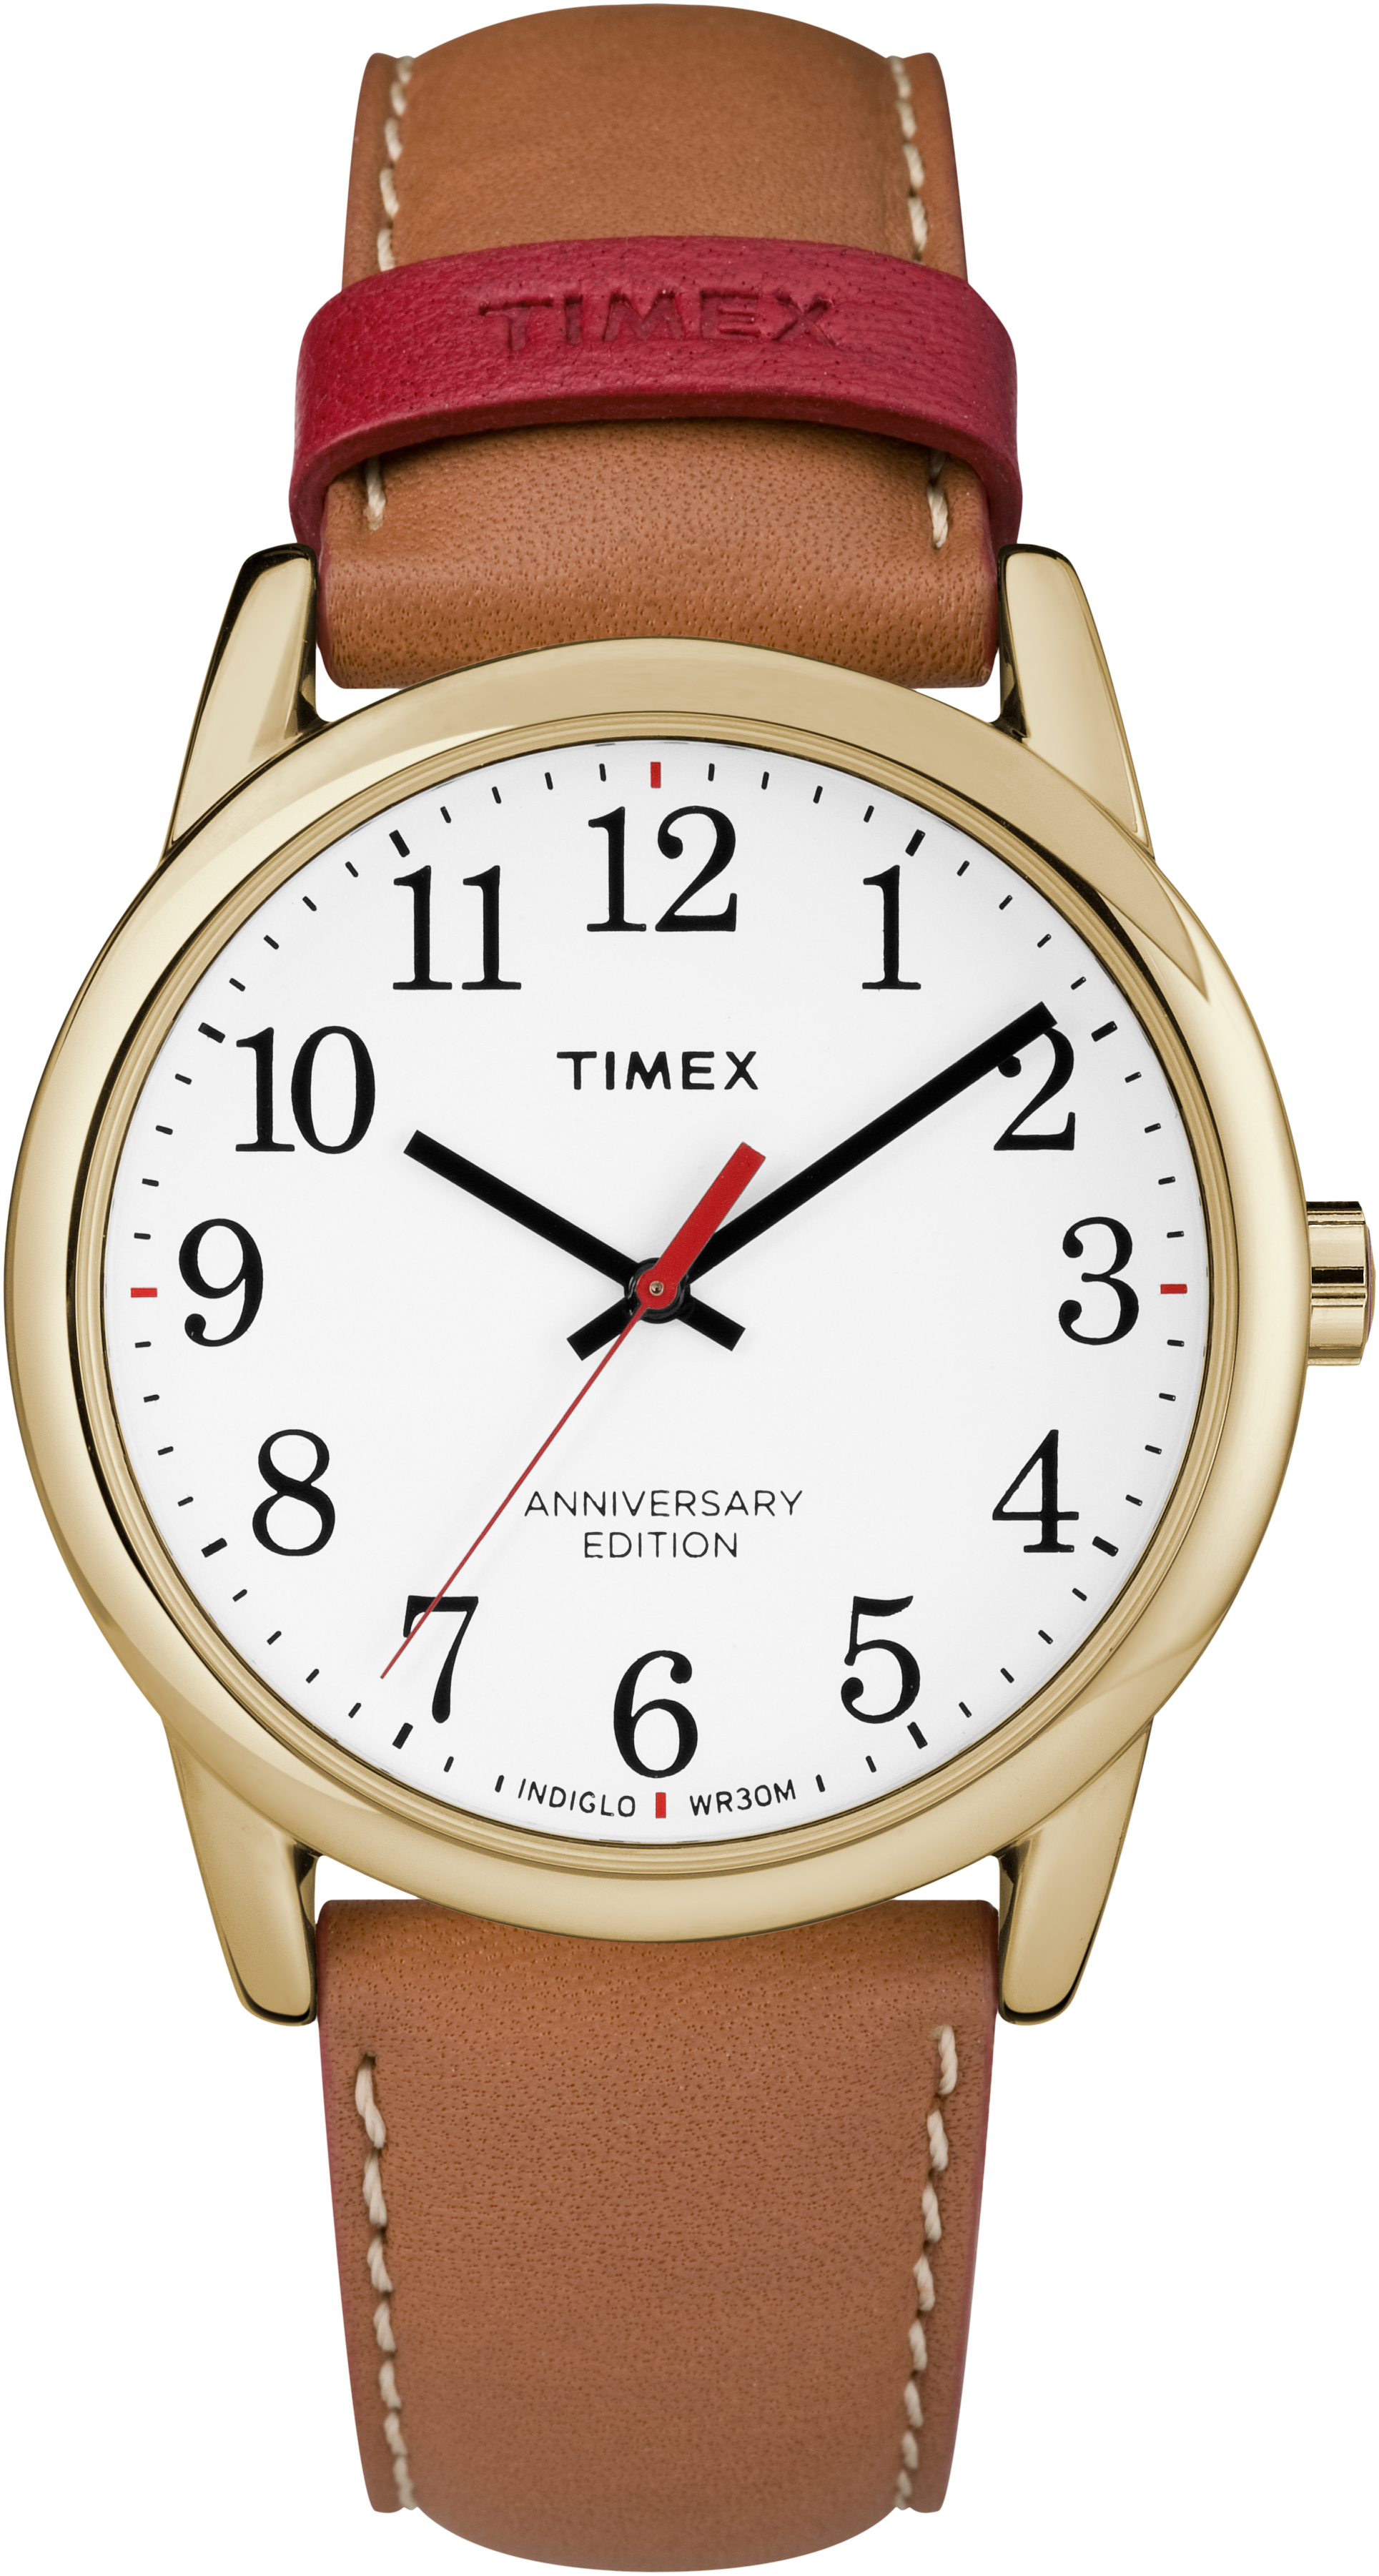 40th Anniversary for Men - White dial & Brown leather band